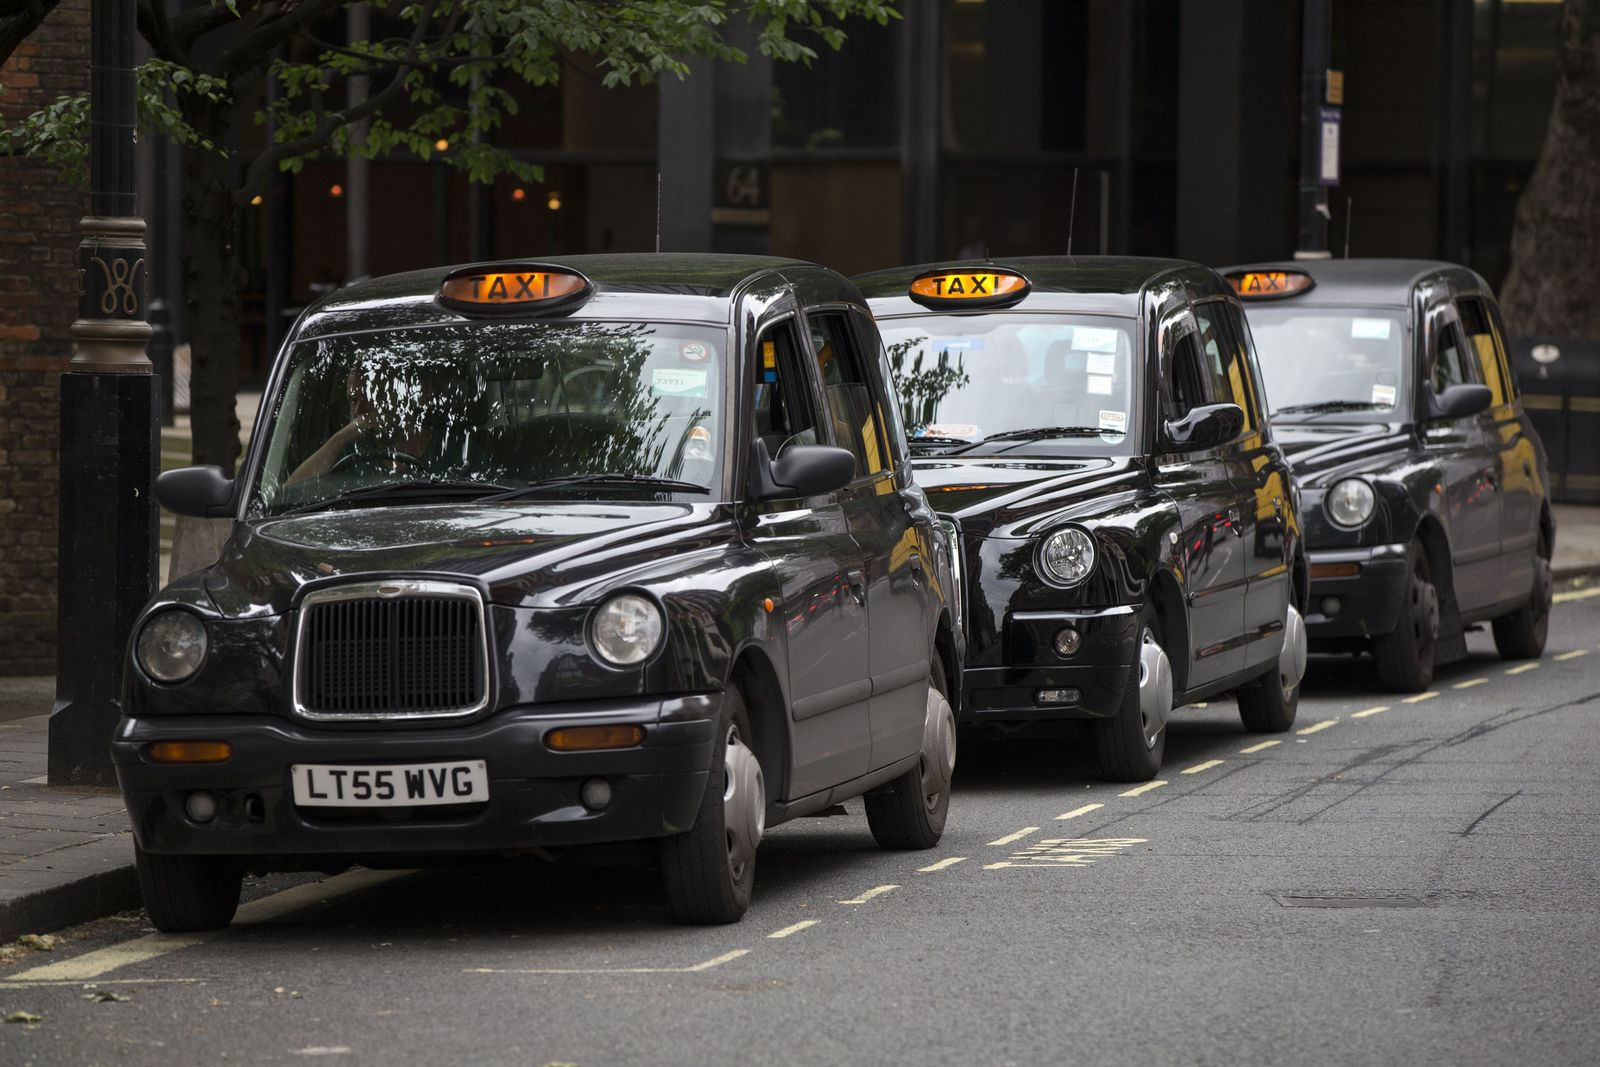 Taxi/ London